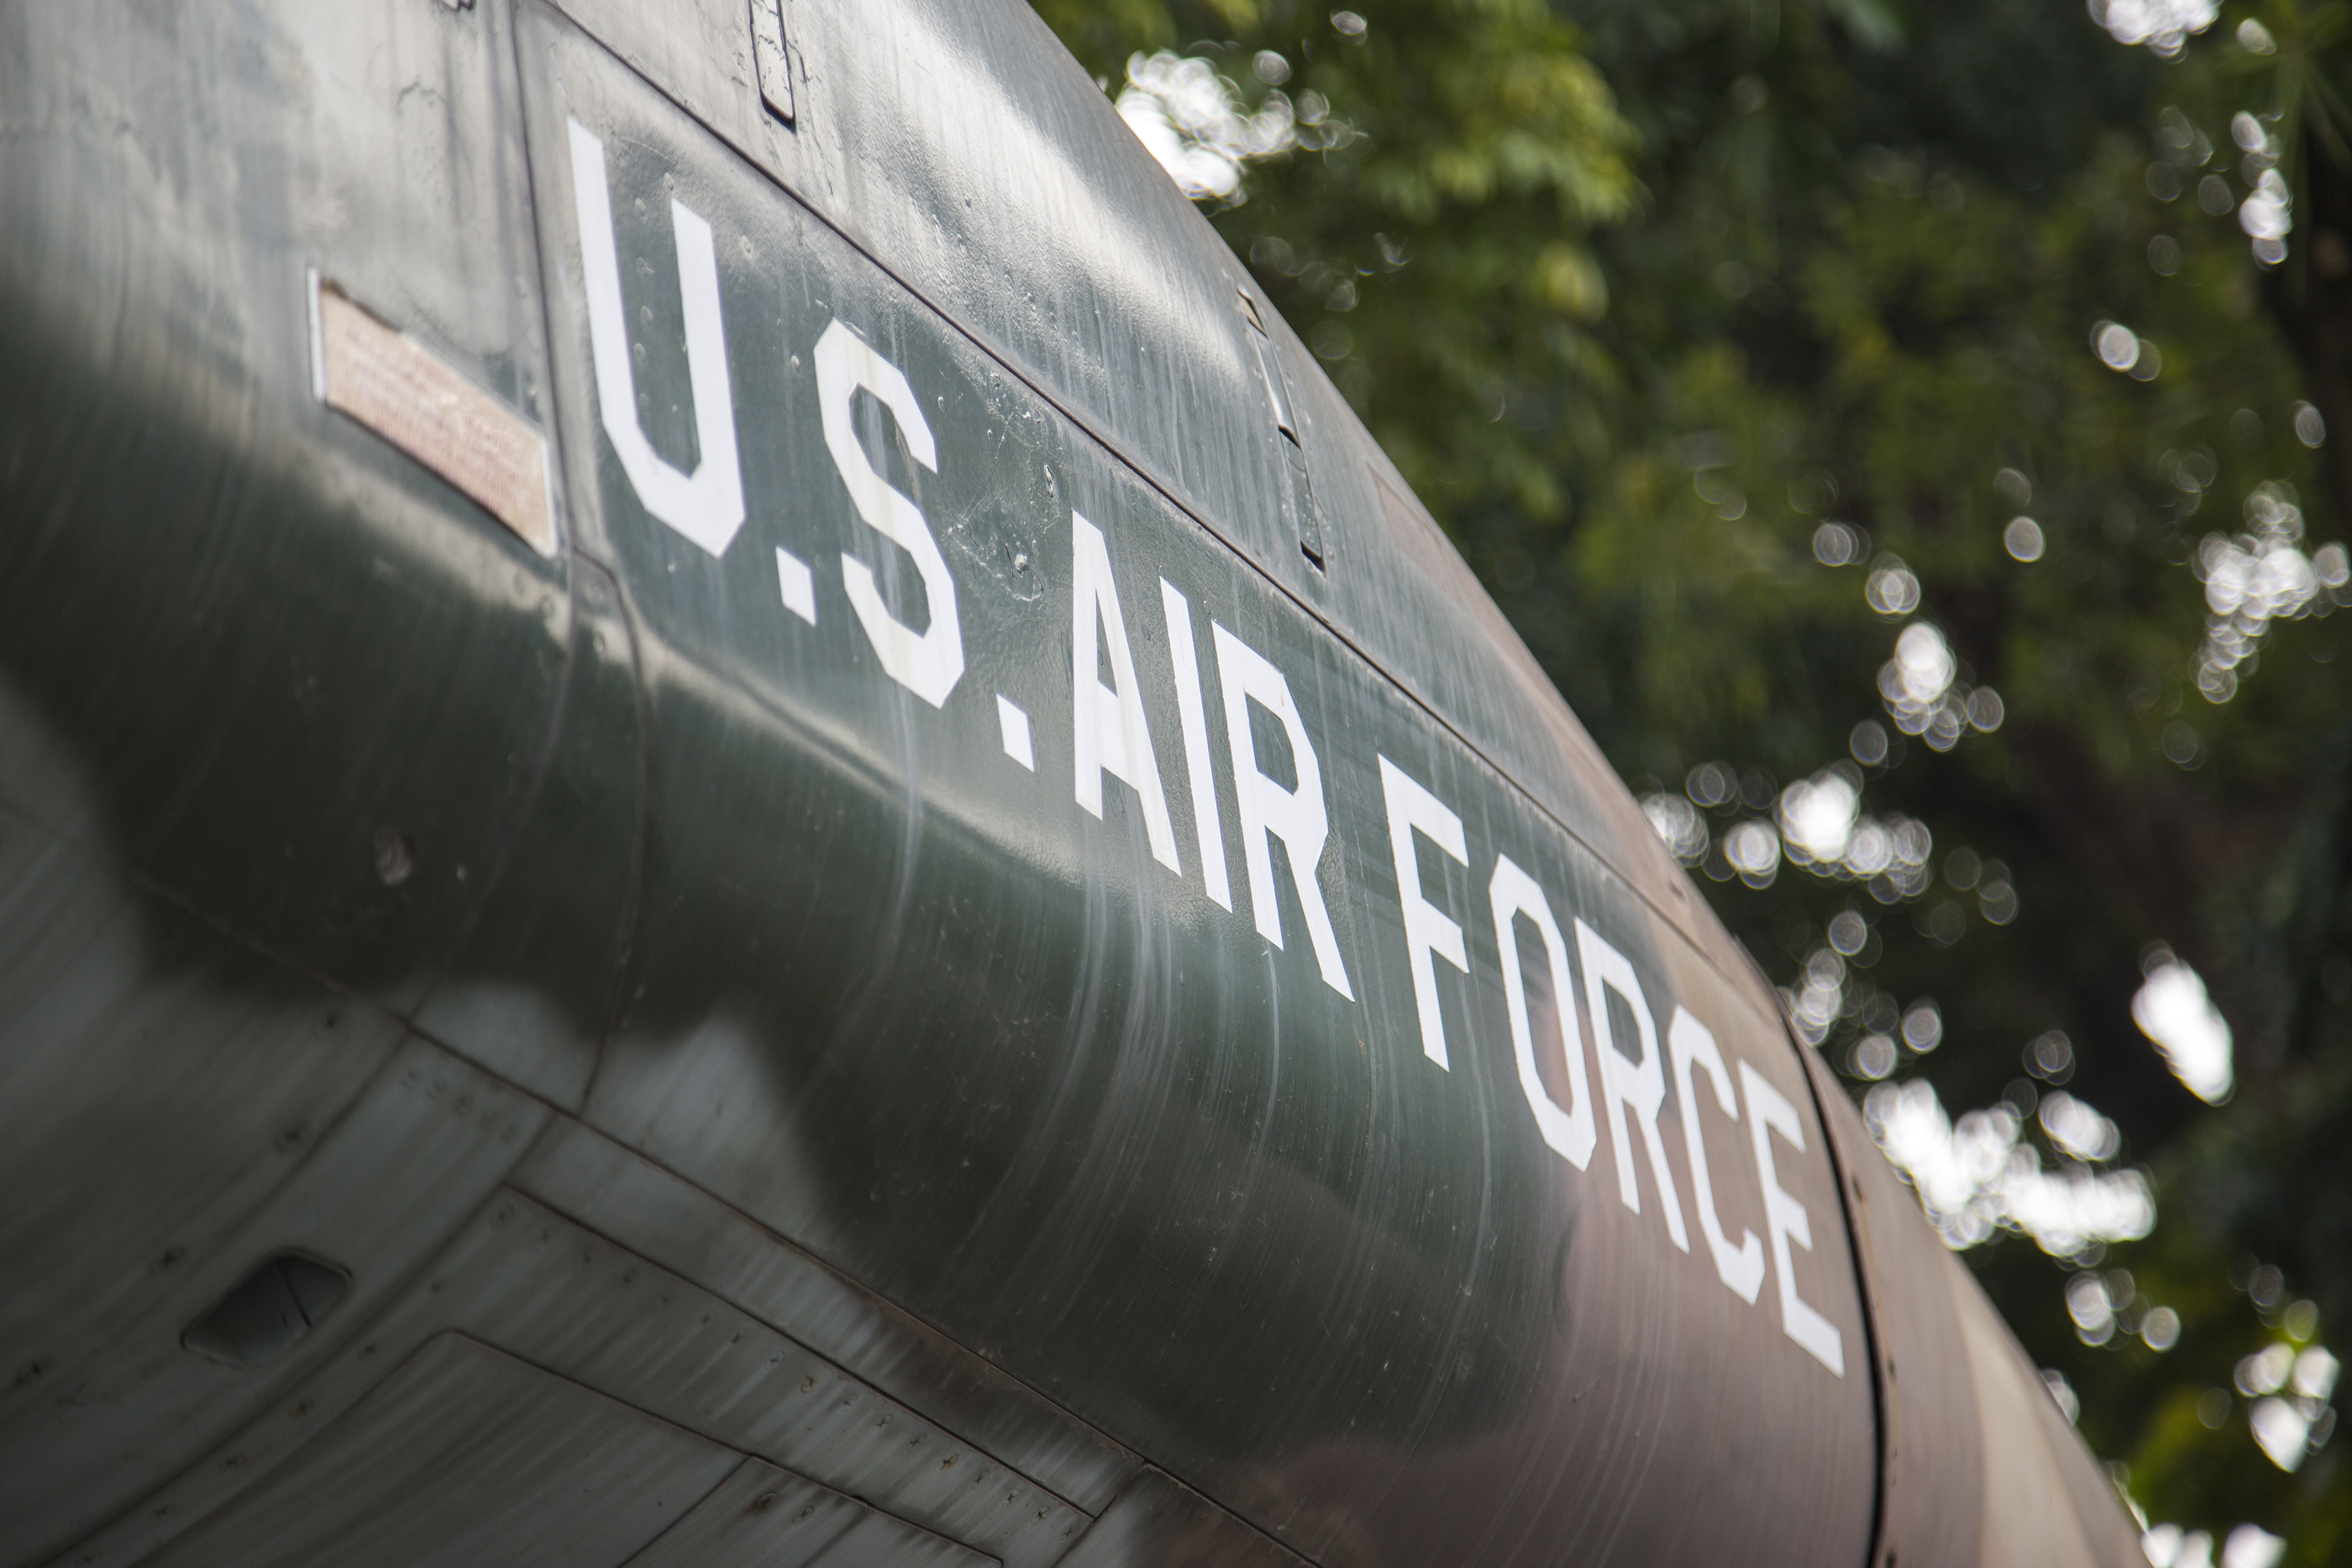 U.S Air Force words on a fighter jet